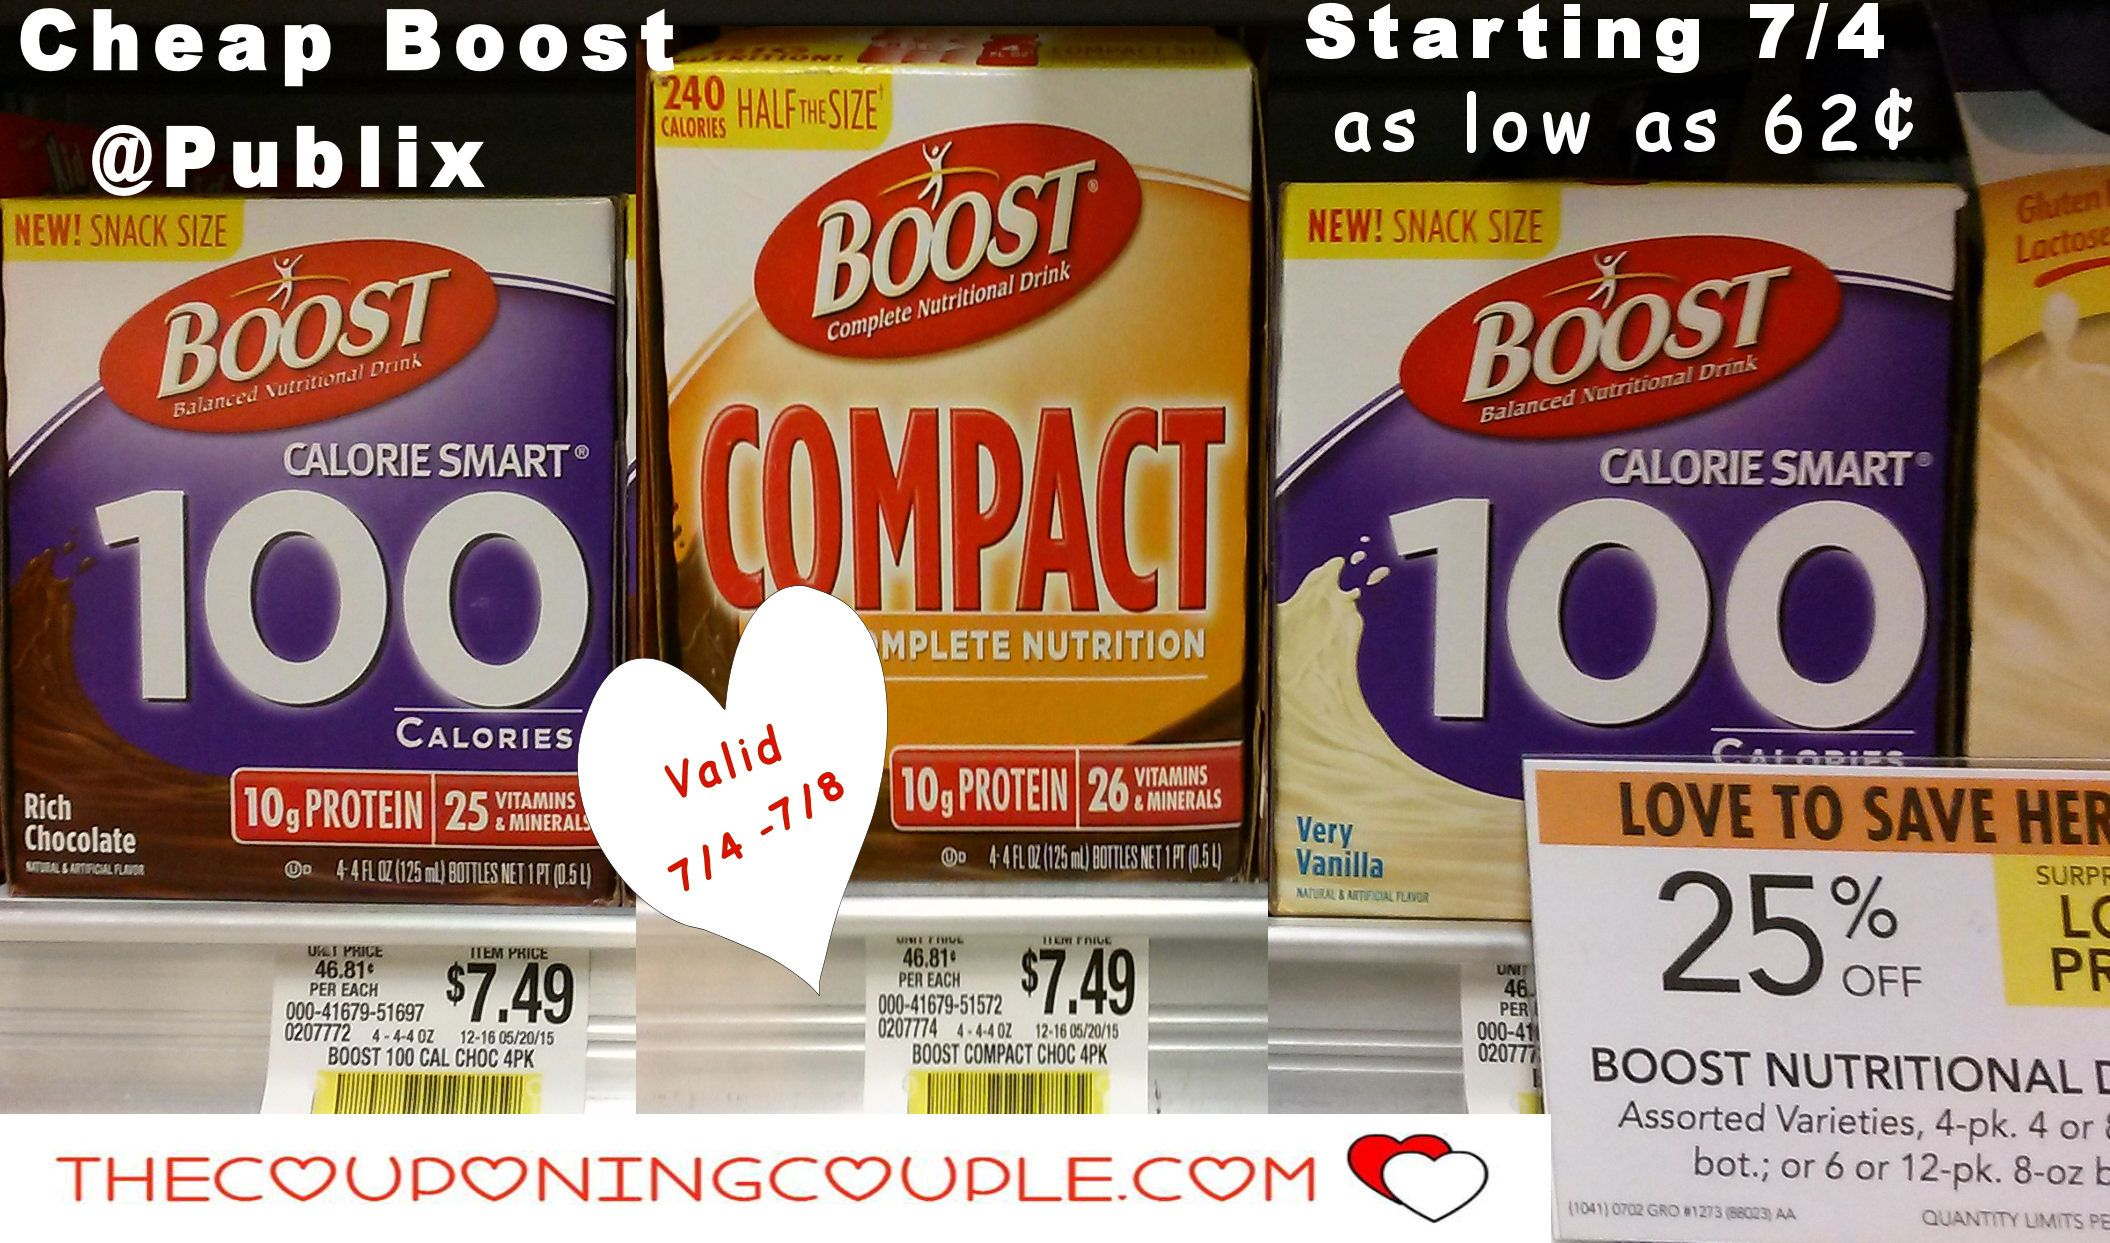 Cheap Boost Publix Calorie Smart Or Compact 0 62 Each Publix Calorie Boost Drink